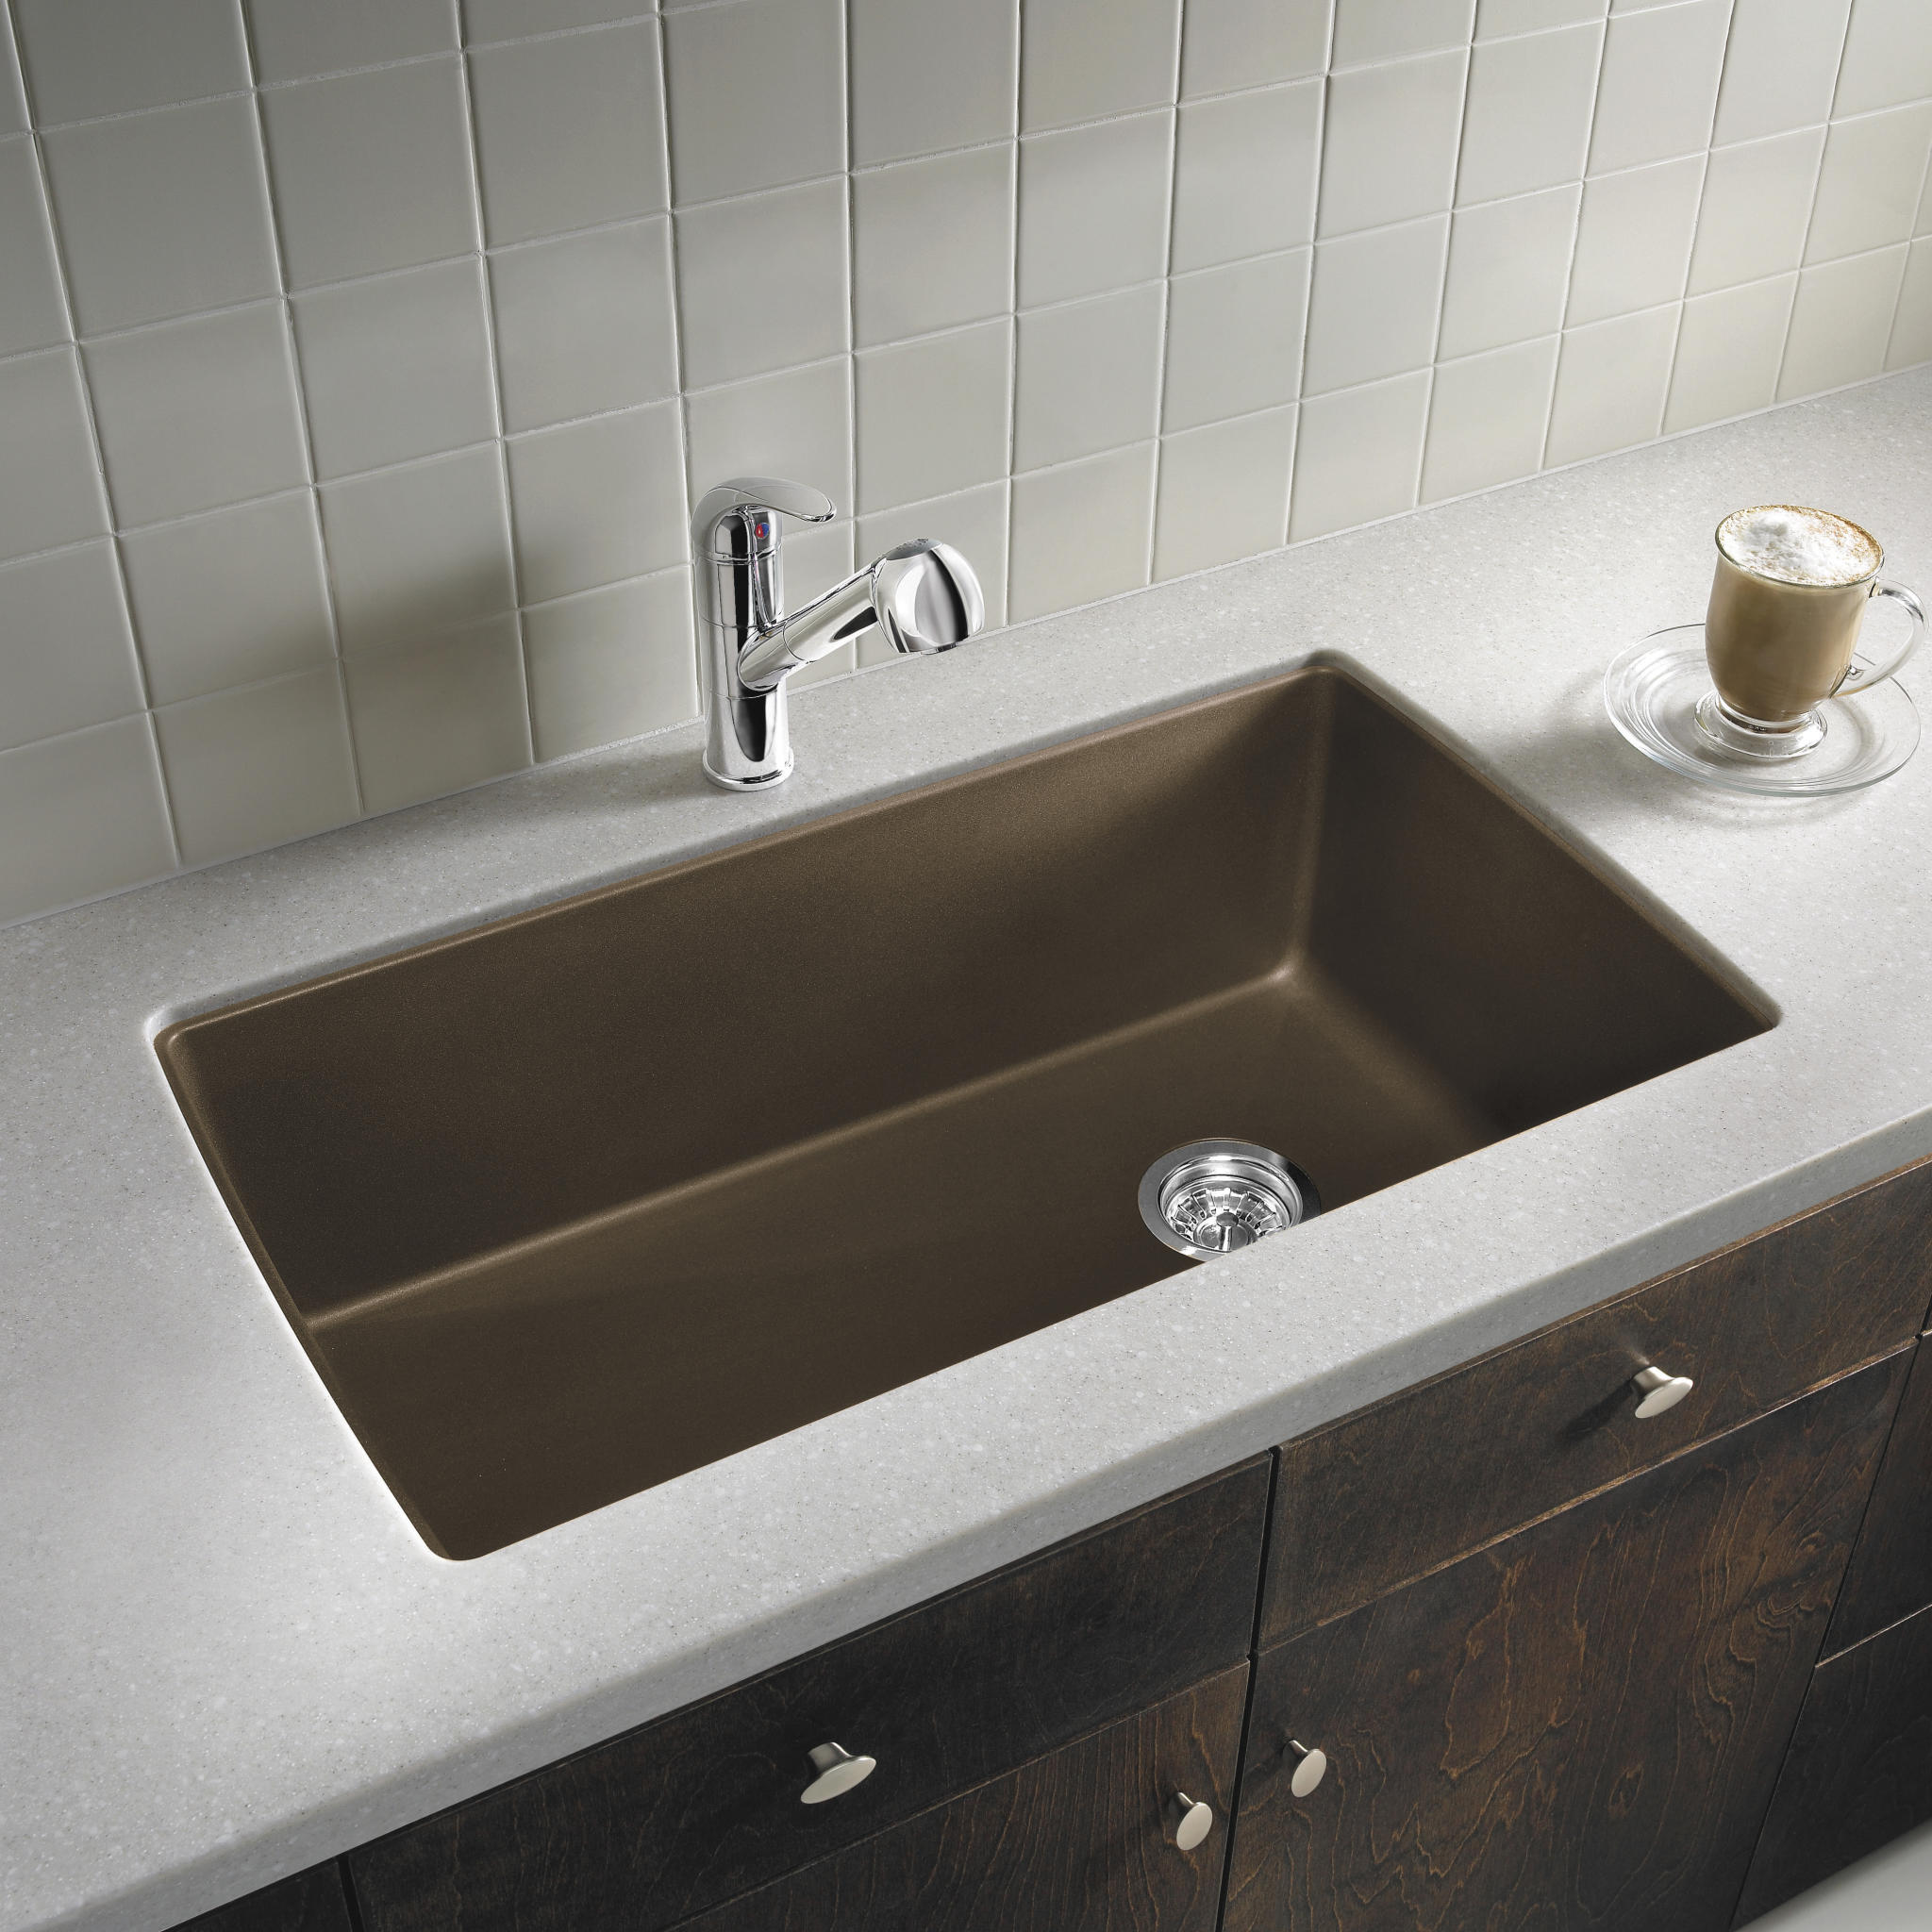 blanco 32 12 diamond super single bowl sink - Kitchen Sink Cabinet Size